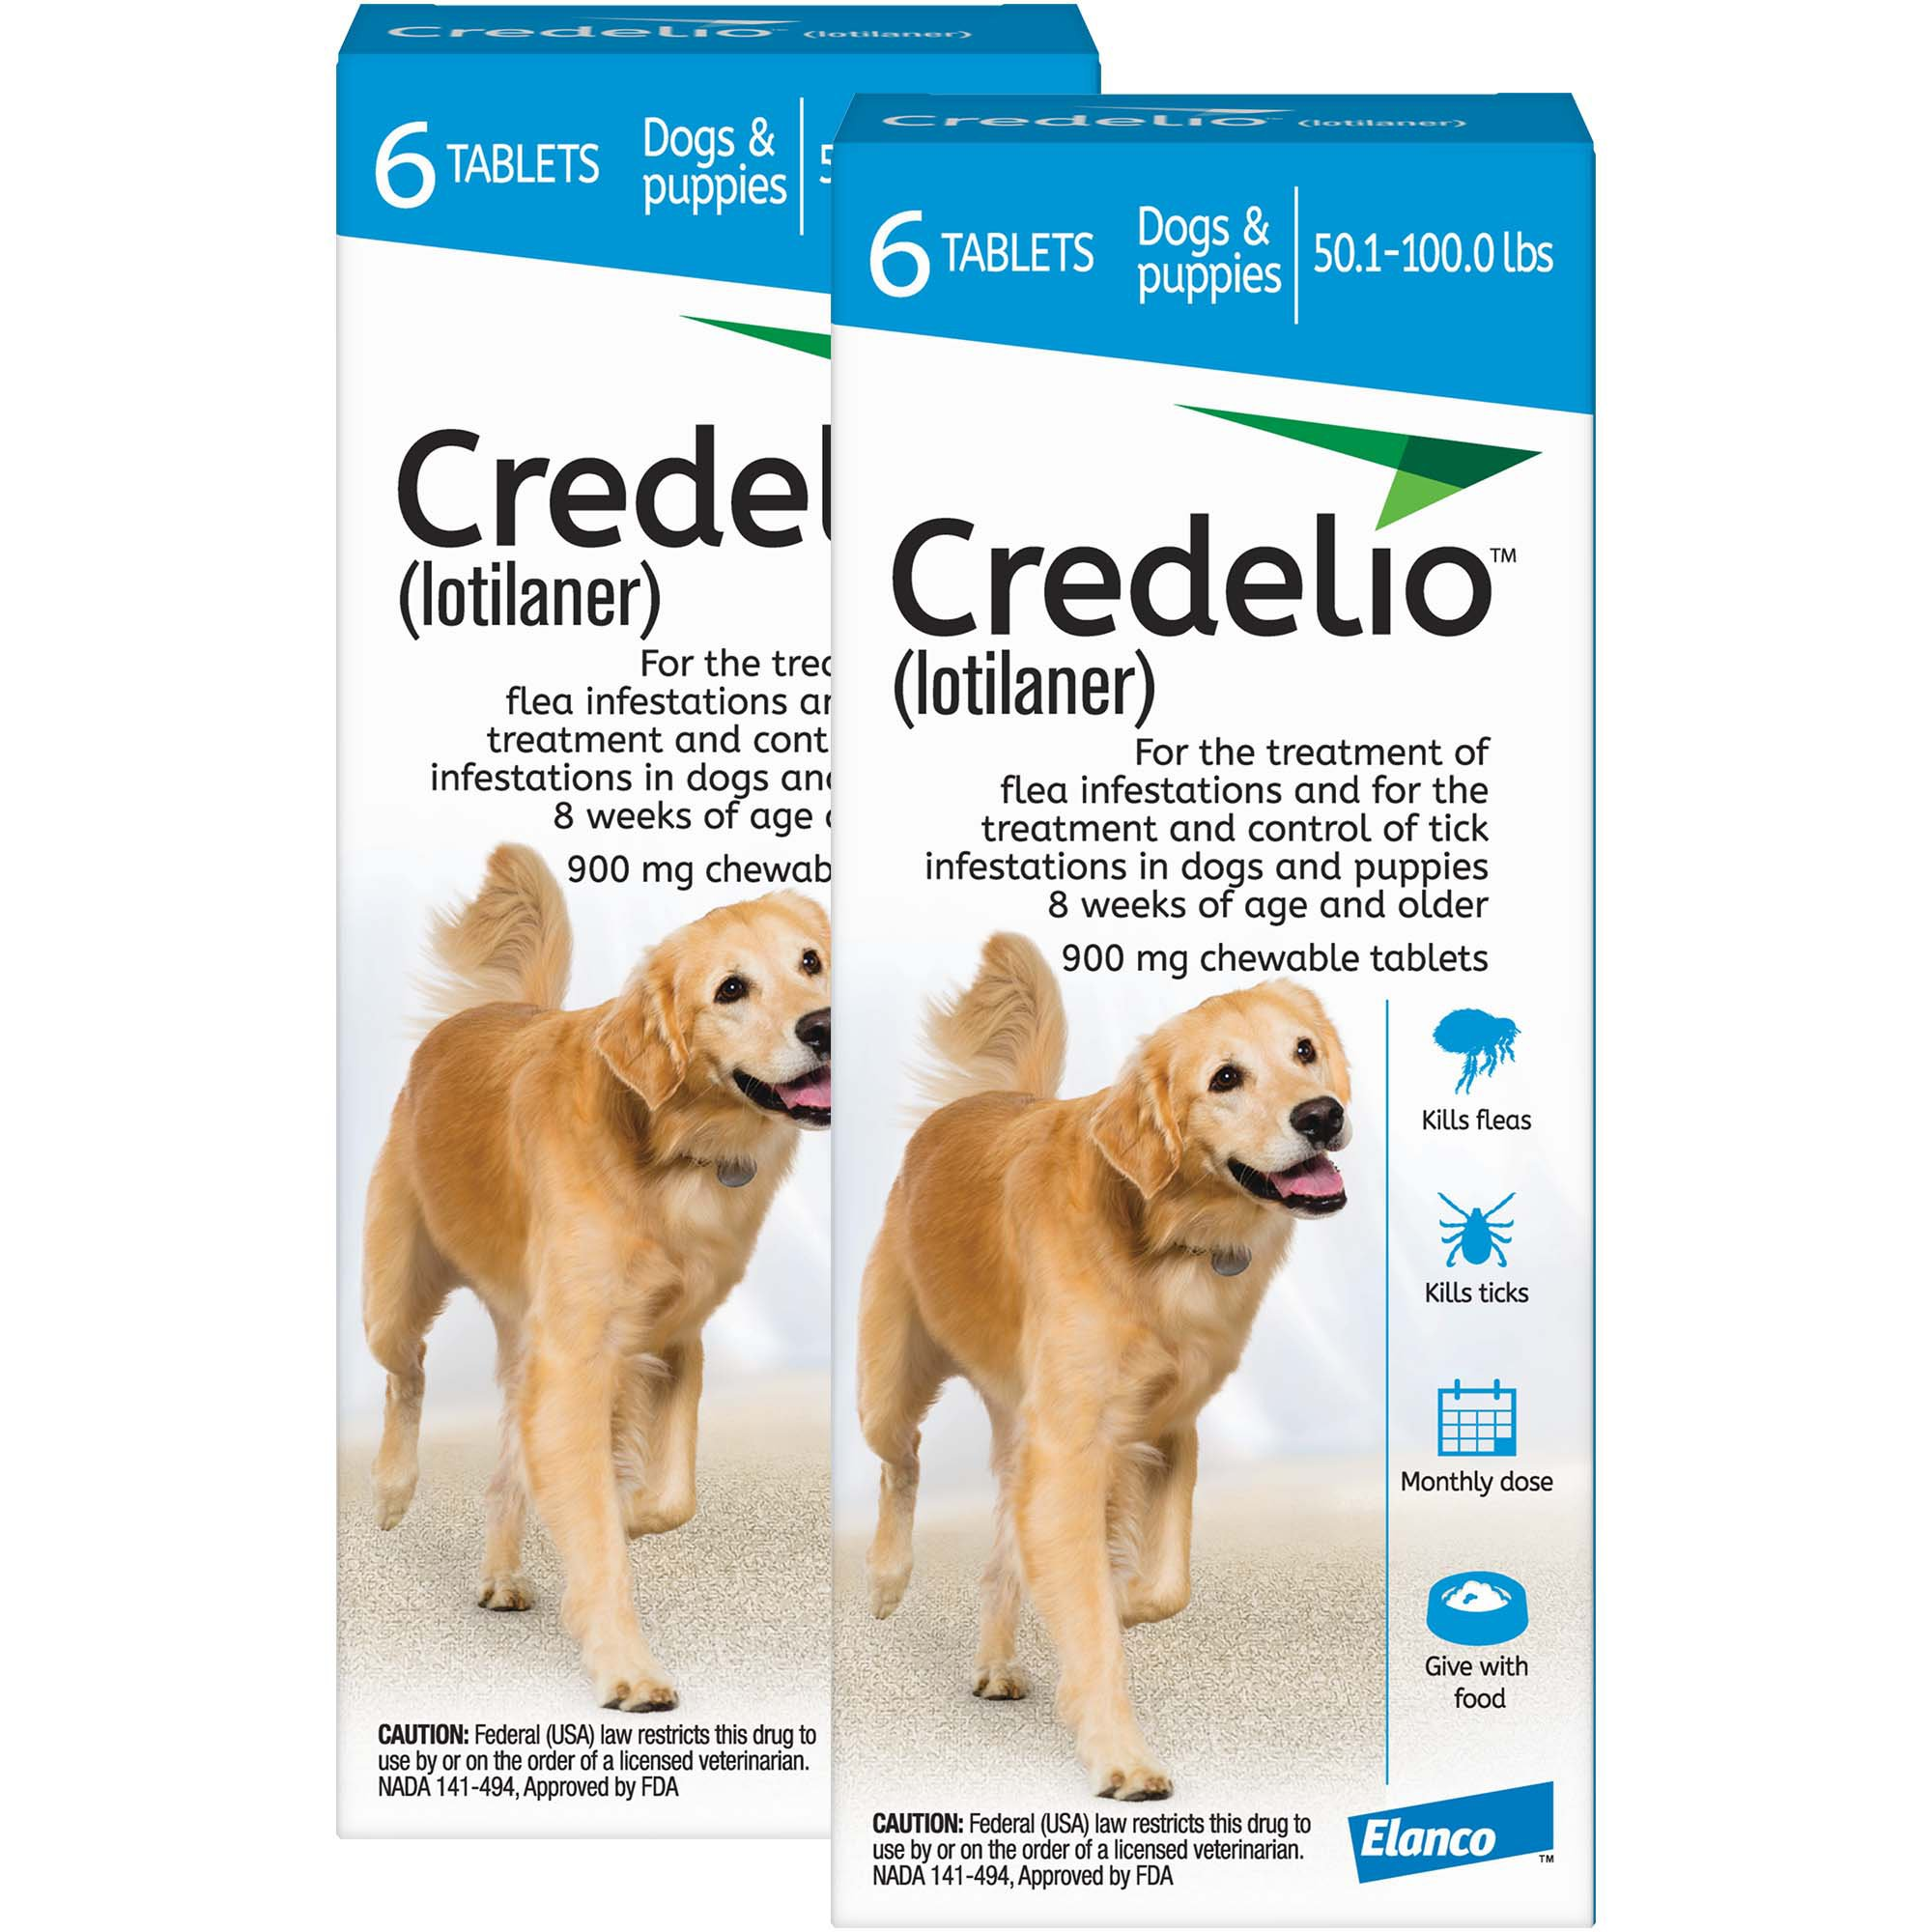 Credelio Chewable Tablets for Dogs 50 1-100 lbs  - Blue | Petco